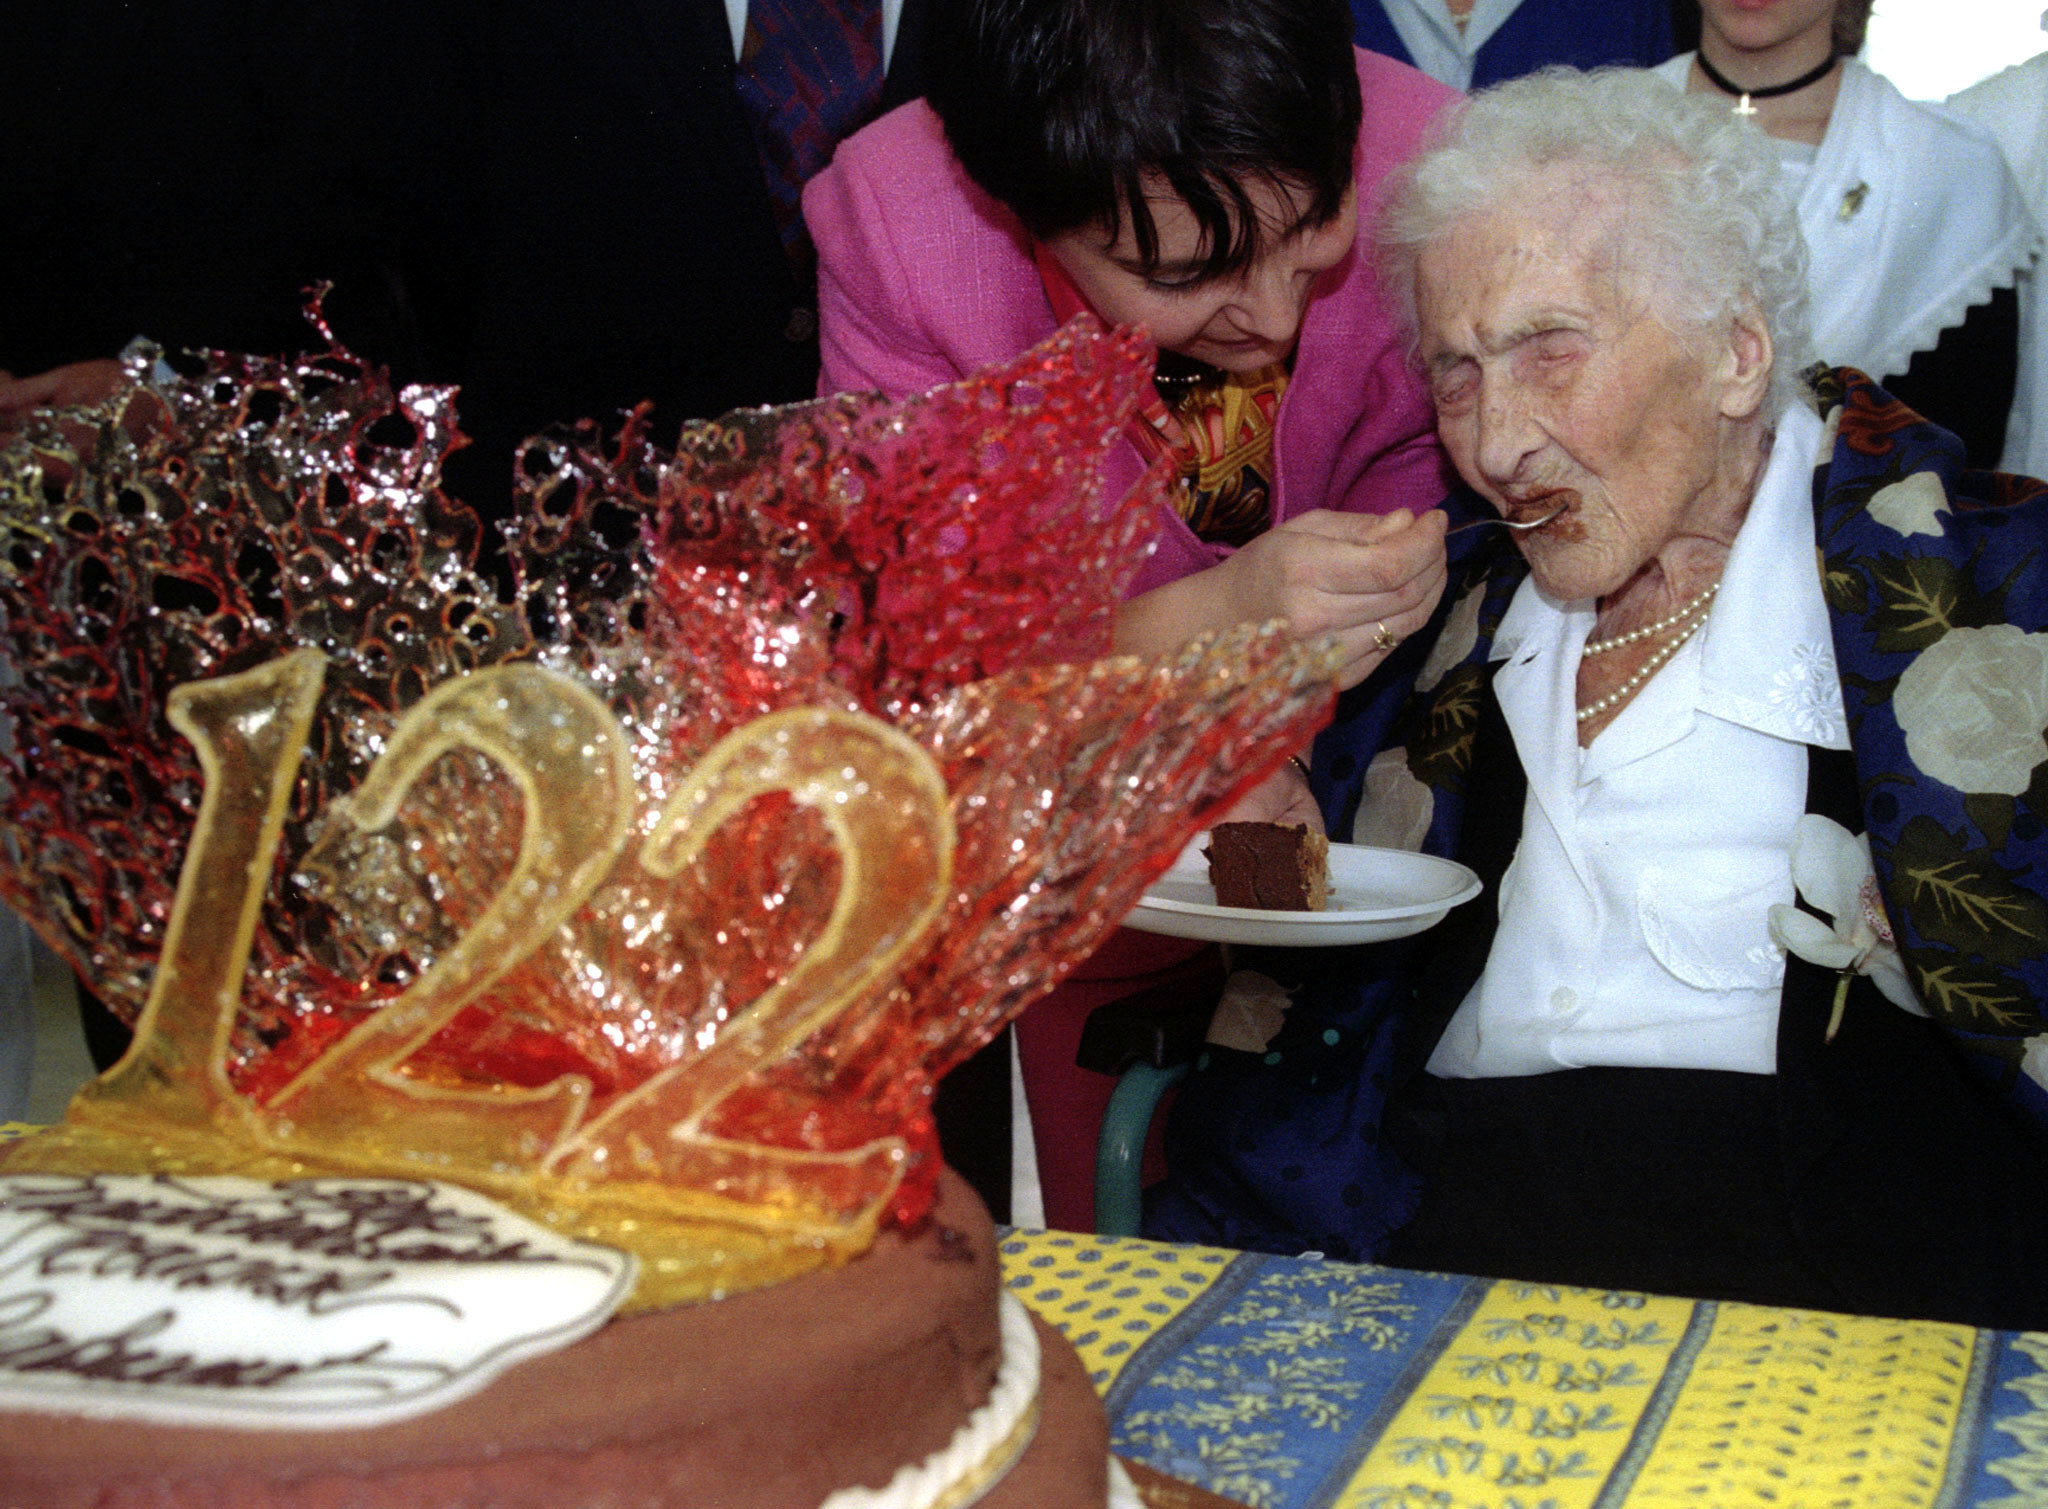 Frenchwoman Jeanne Calment, officially the world's oldest person, celebrates her 122nd birthday with a chocolate cake